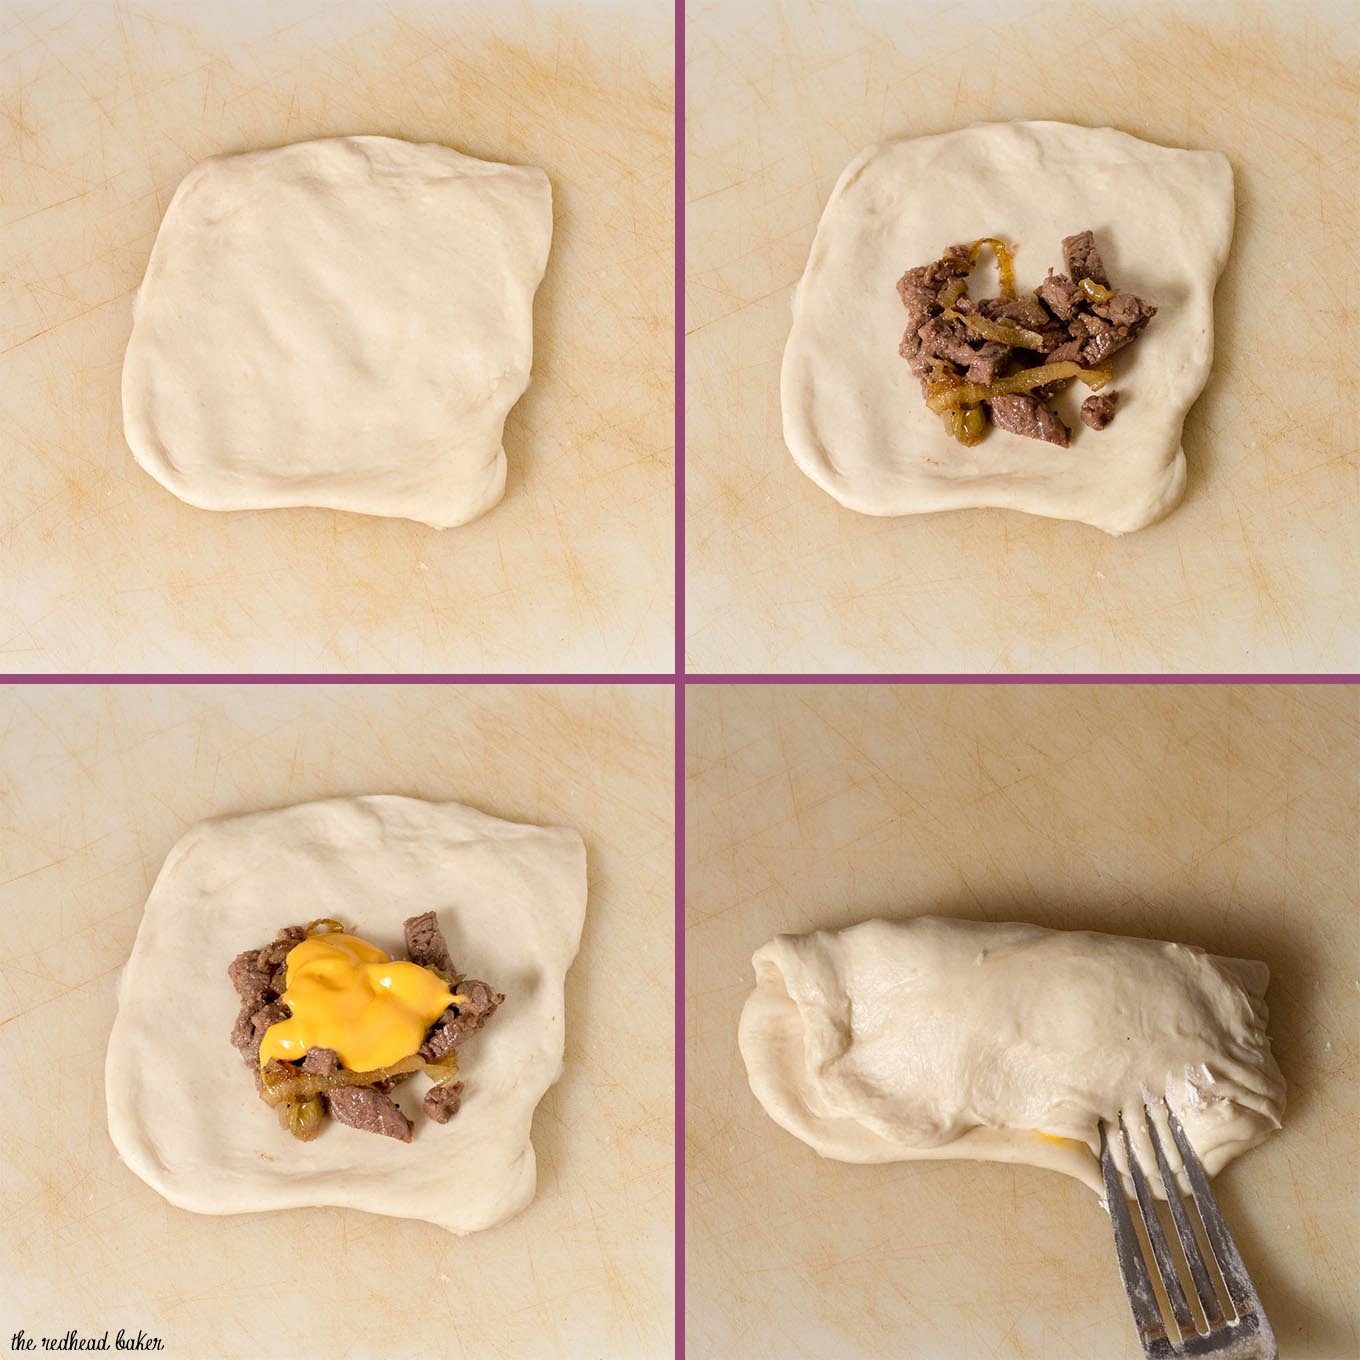 A collage showing the steps to make an empanada: first, flatten the dough into a circle, then place the steak and onion filling, then add the cheese, then fold and crimp.